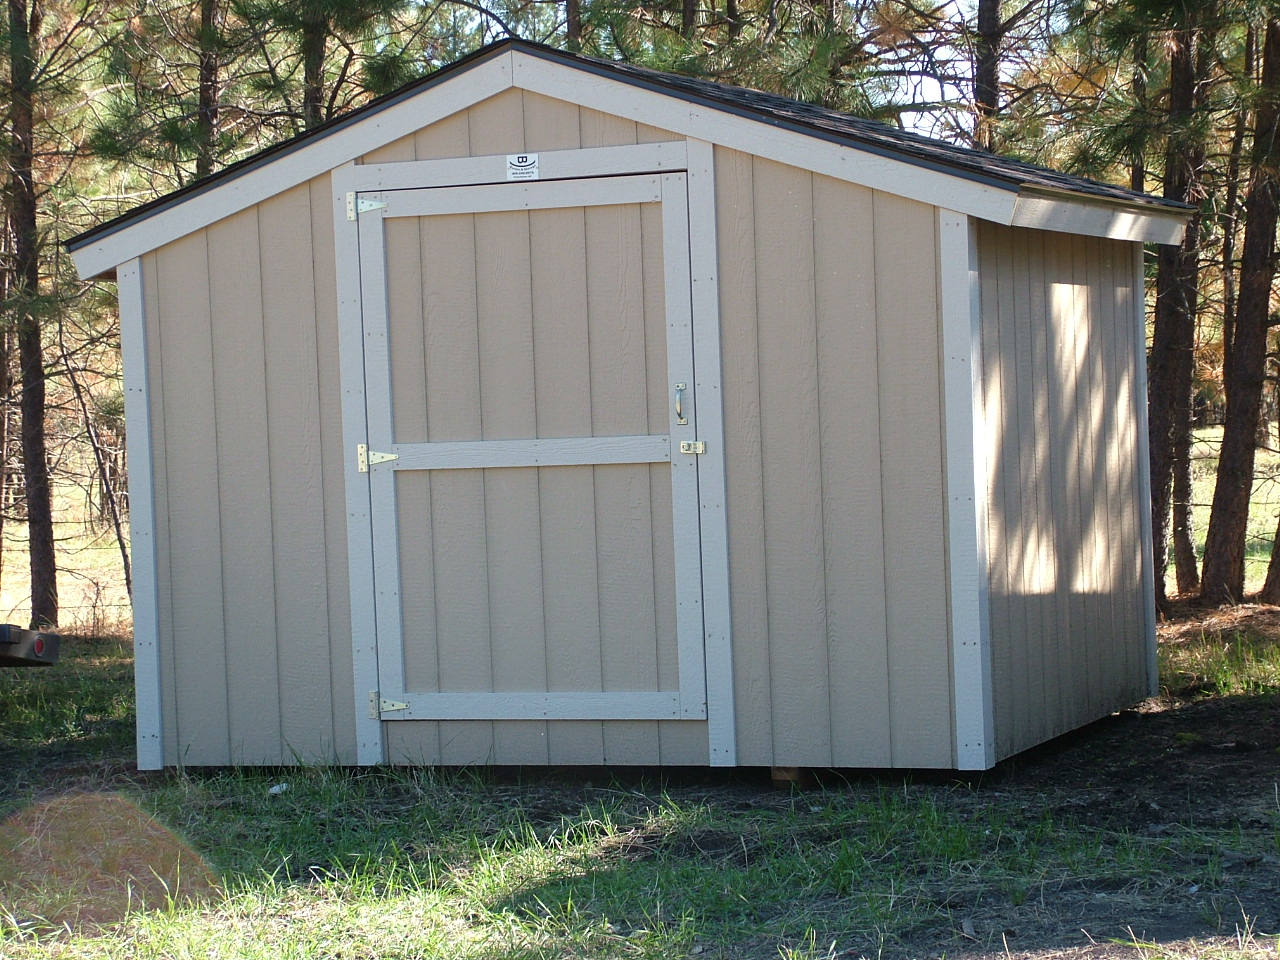 How to Build a Storage Shed Without a Foundation | eHow UK